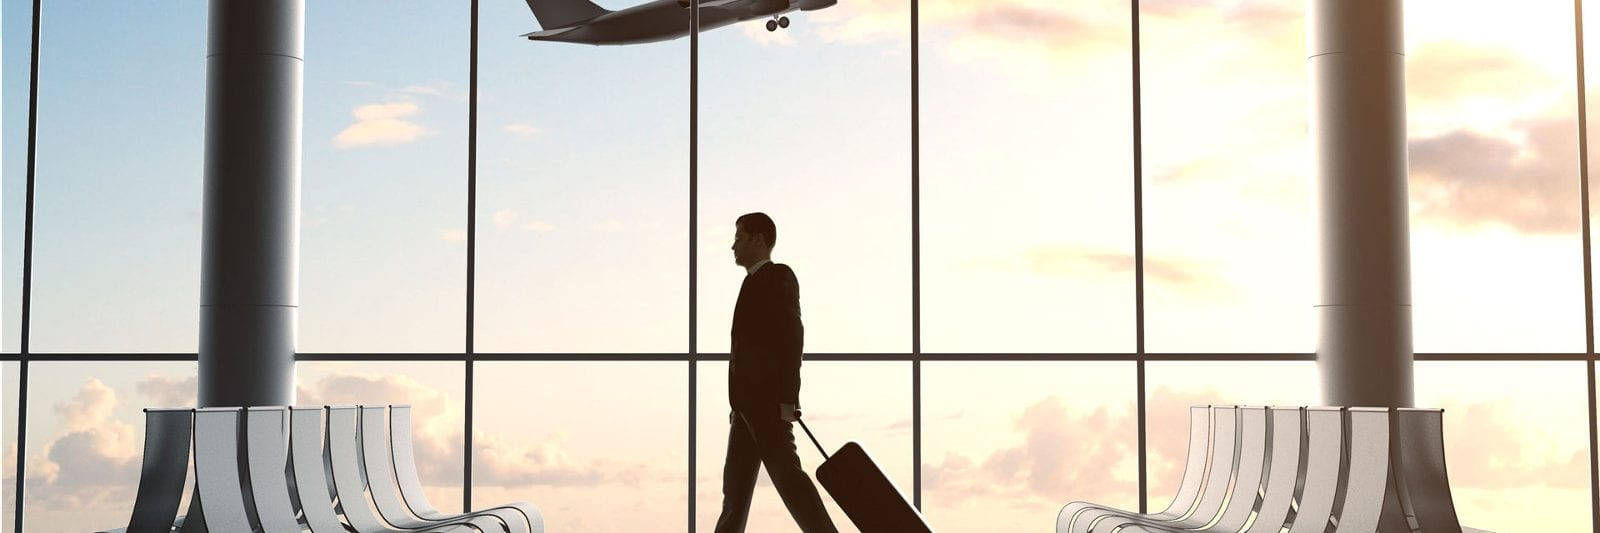 International Airport Travel Checklist Plane Luggage